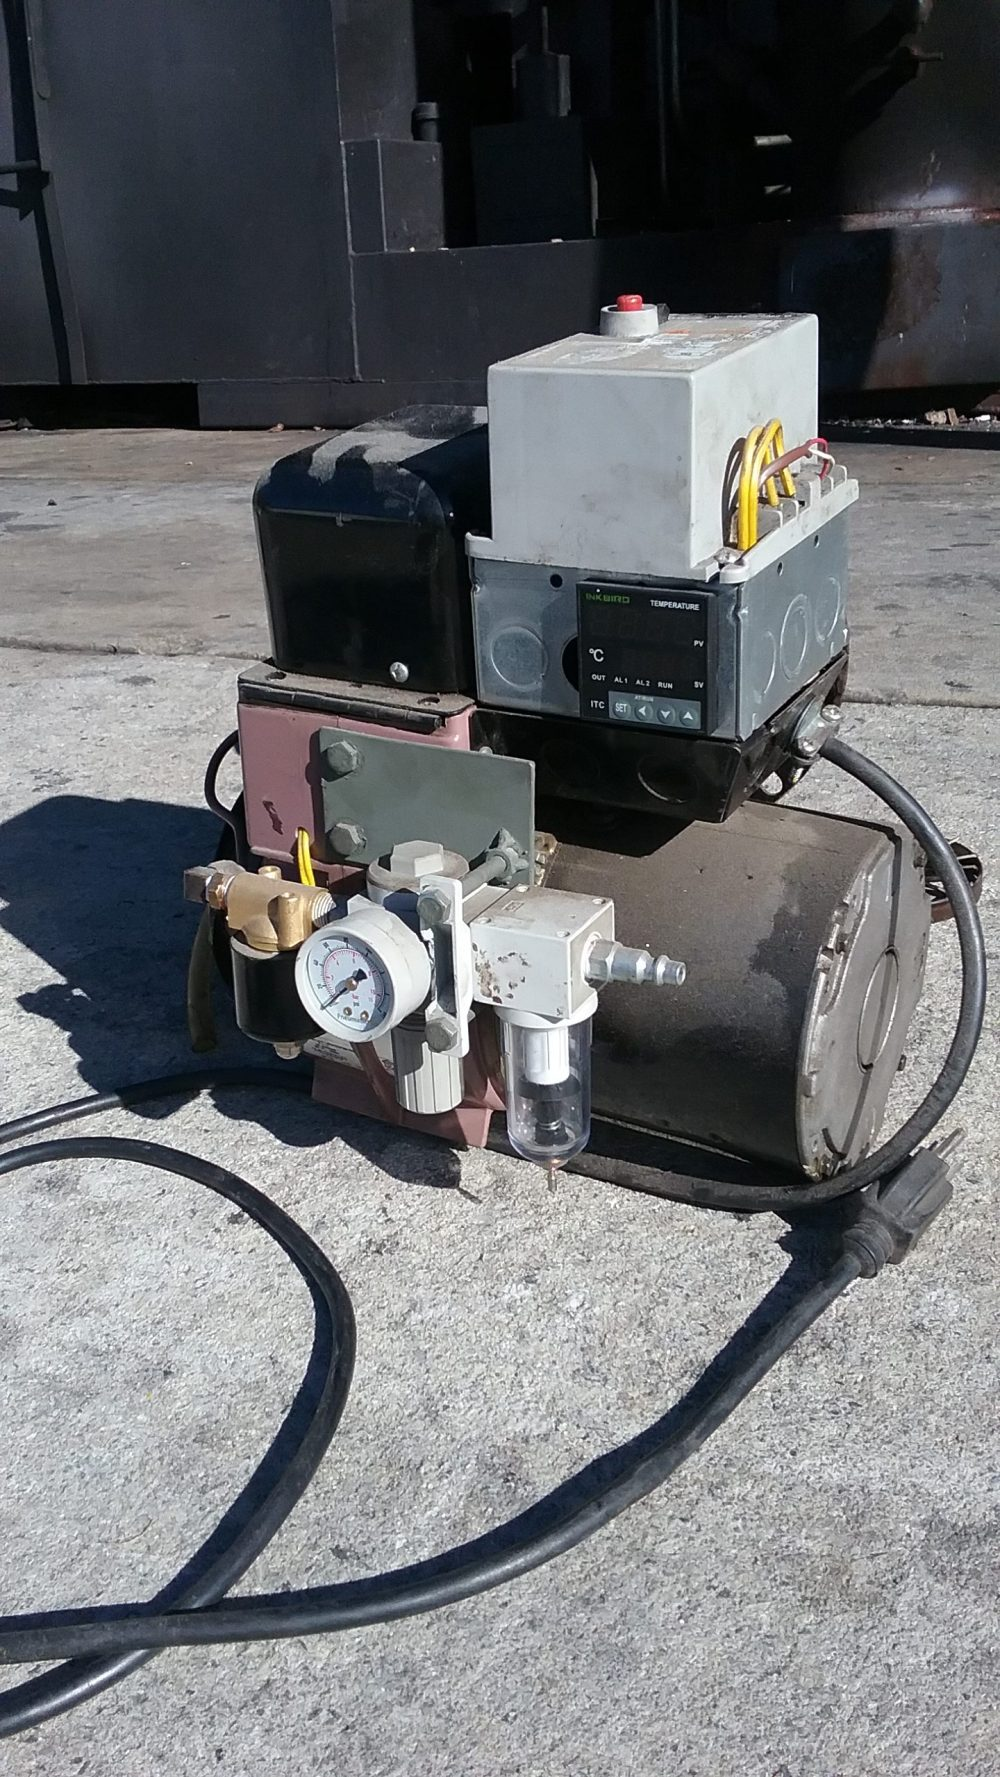 medium resolution of a modified gun style burner developed for use with waste motor oils pyrolysis oil